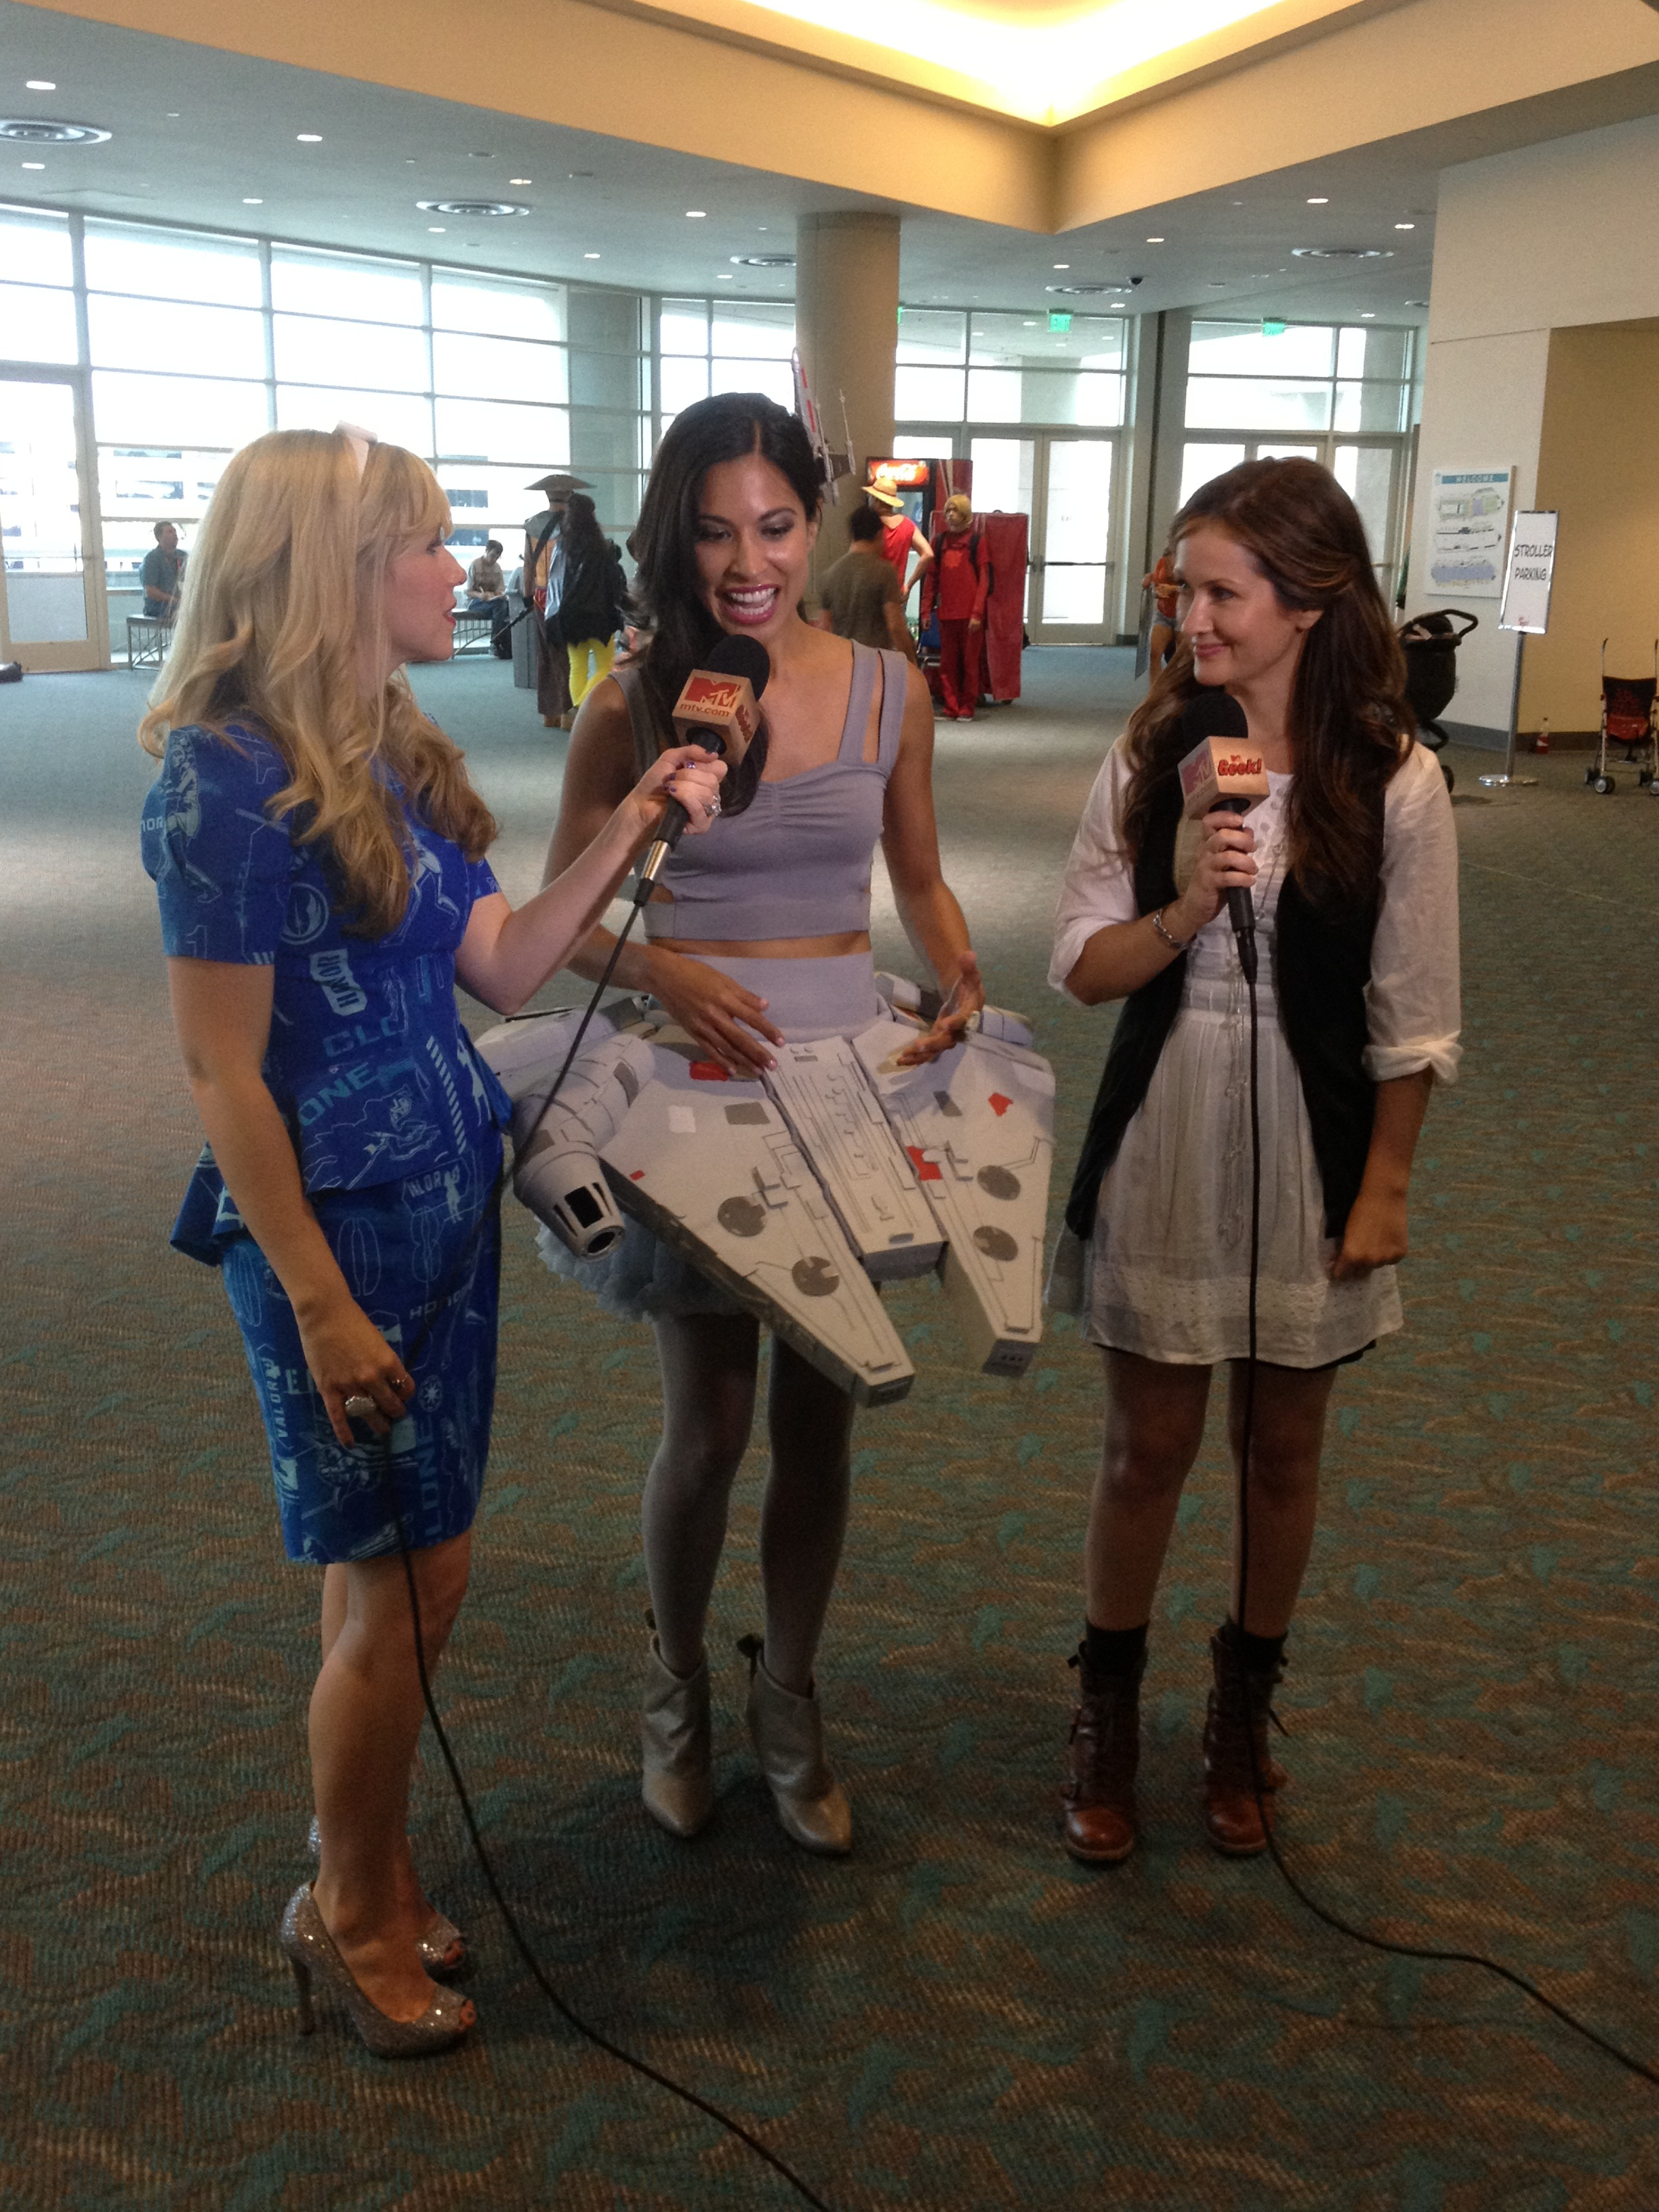 Me and Cat interview our winner, Jennifer, in her Millennium Falcon dress for MTV Geek!